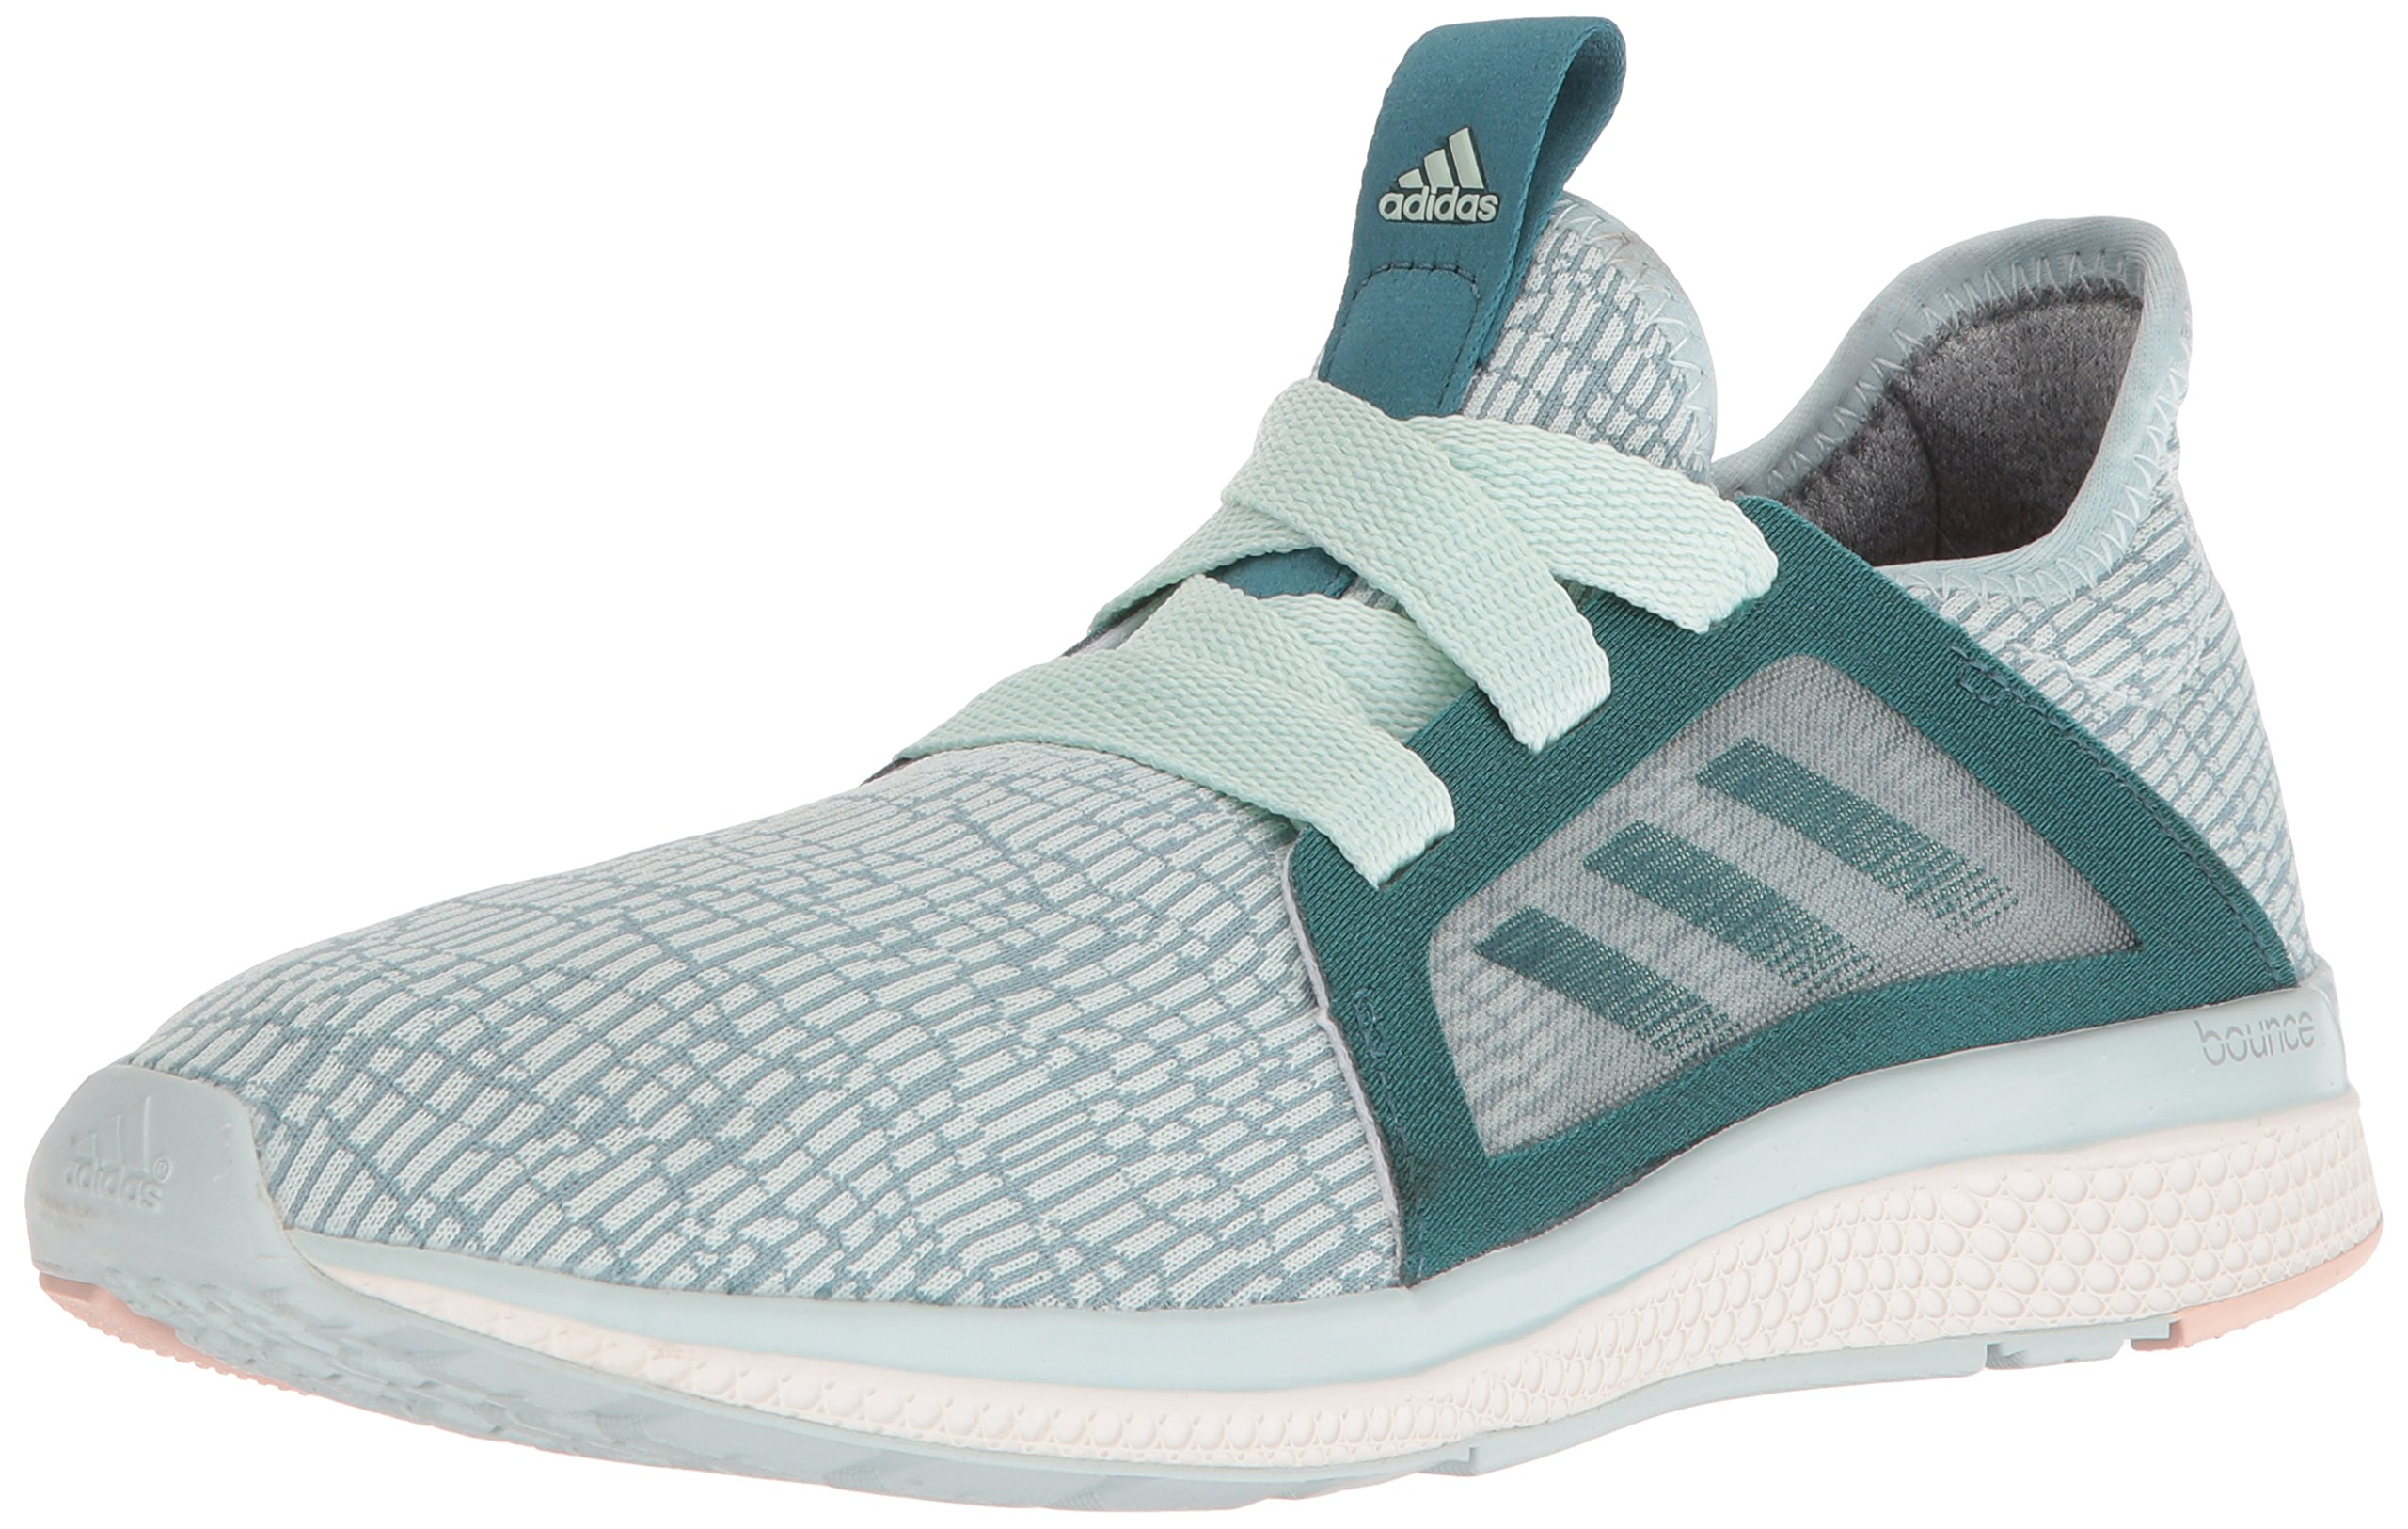 buy popular 0d6df 958b0 Galleon - Adidas Womens Edge Lux W Running Shoe Tech GreenVapour Steel  Fabric, 9.5 M US